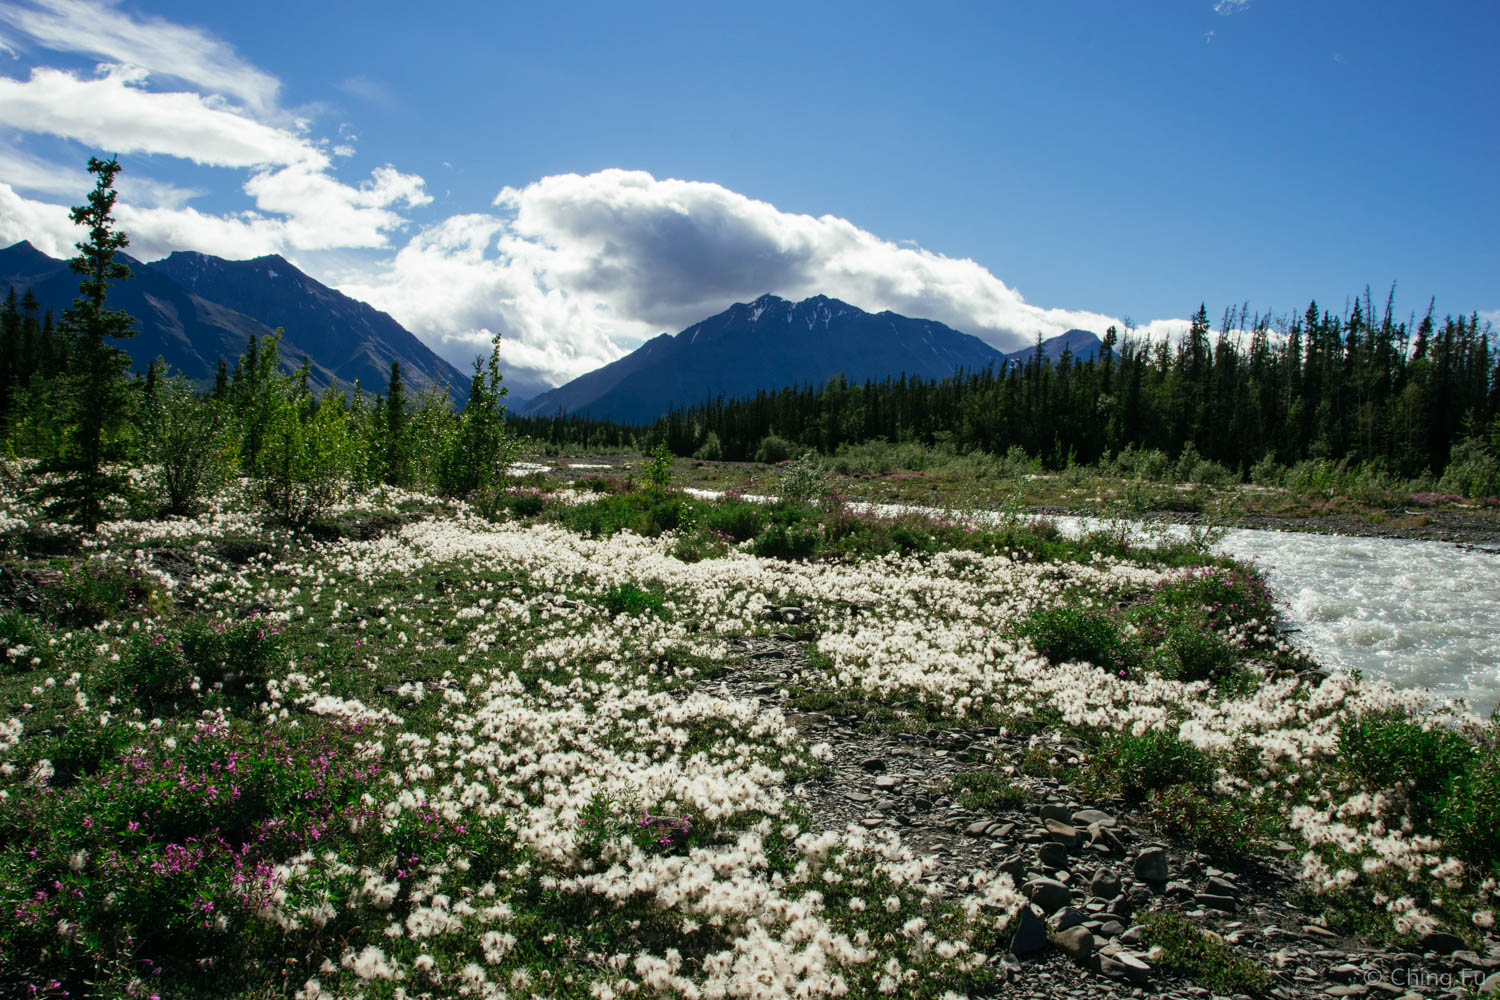 The riverbank covered in dryas and fireweeds.